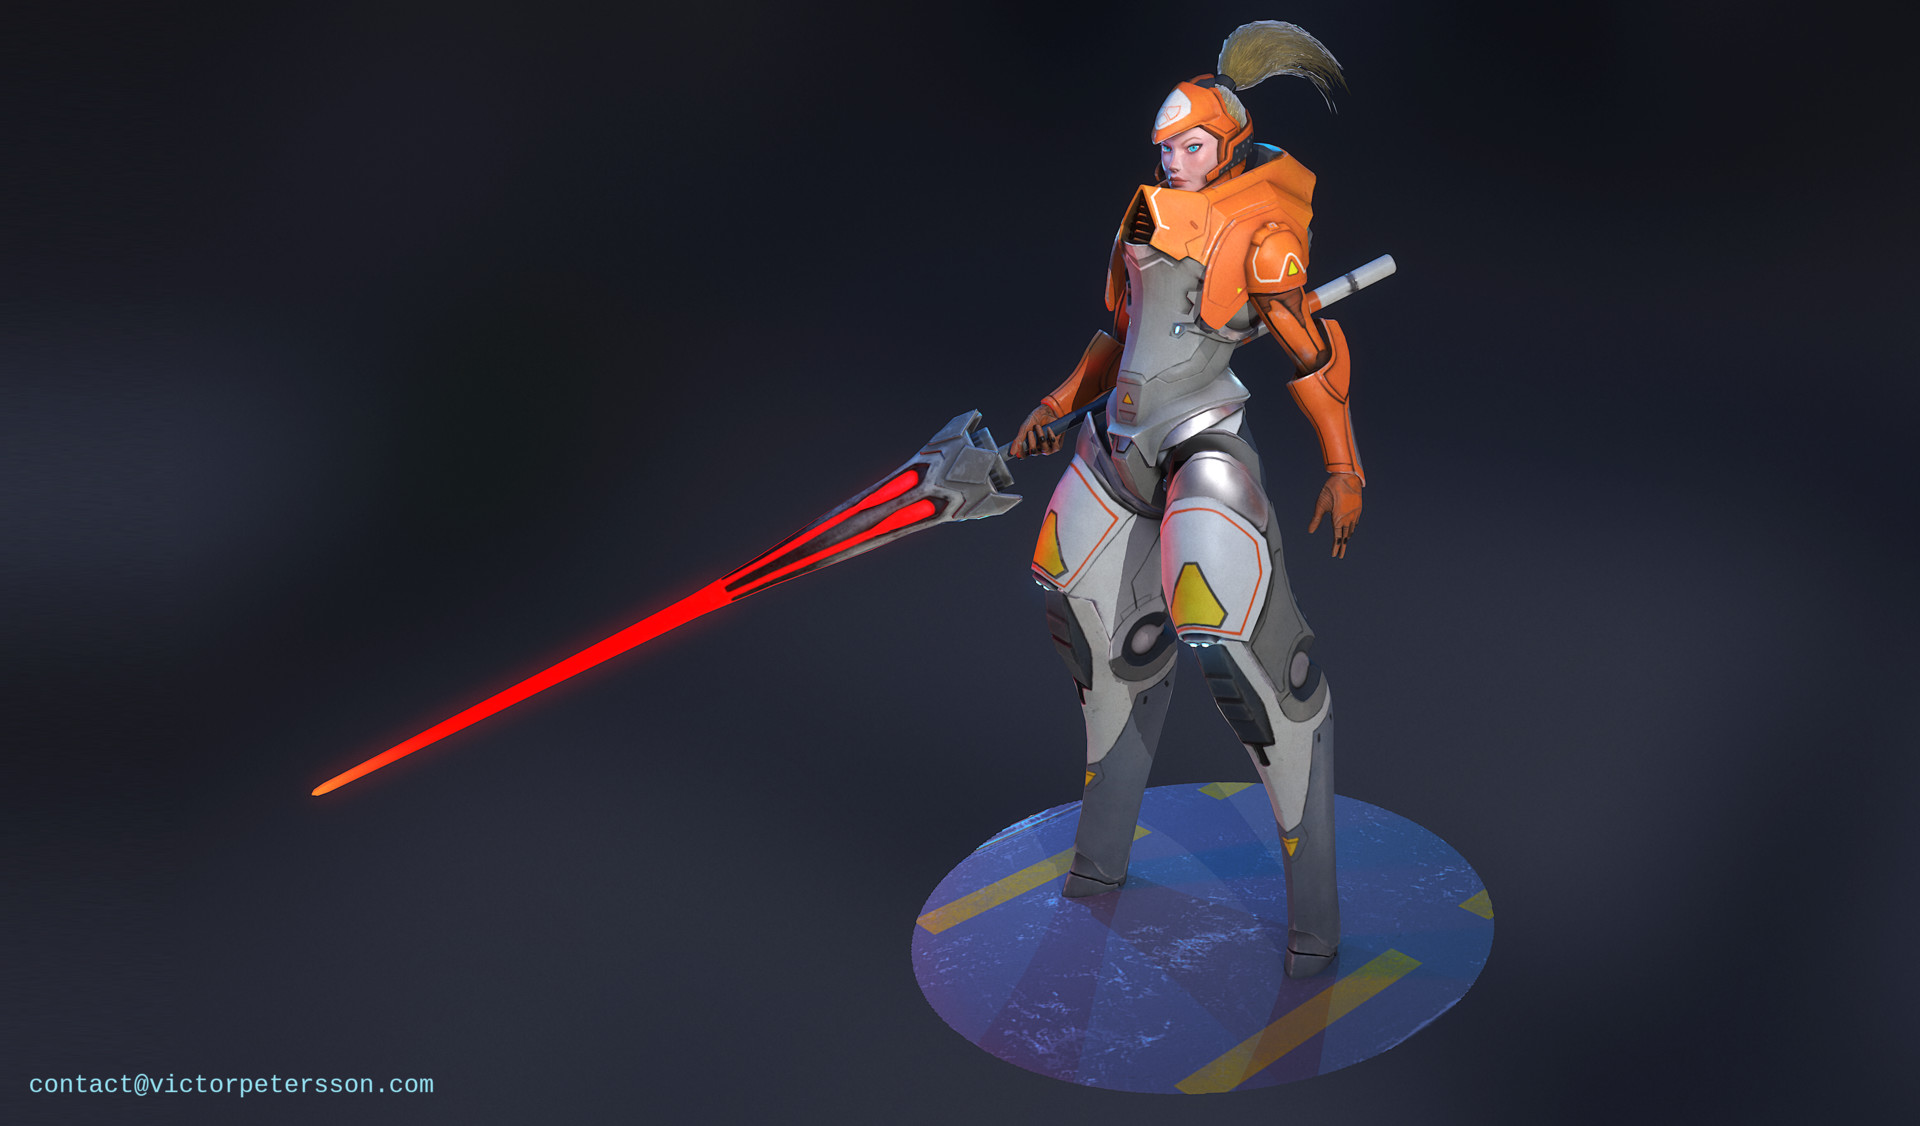 Victor petersson orangejouster conceptrender front